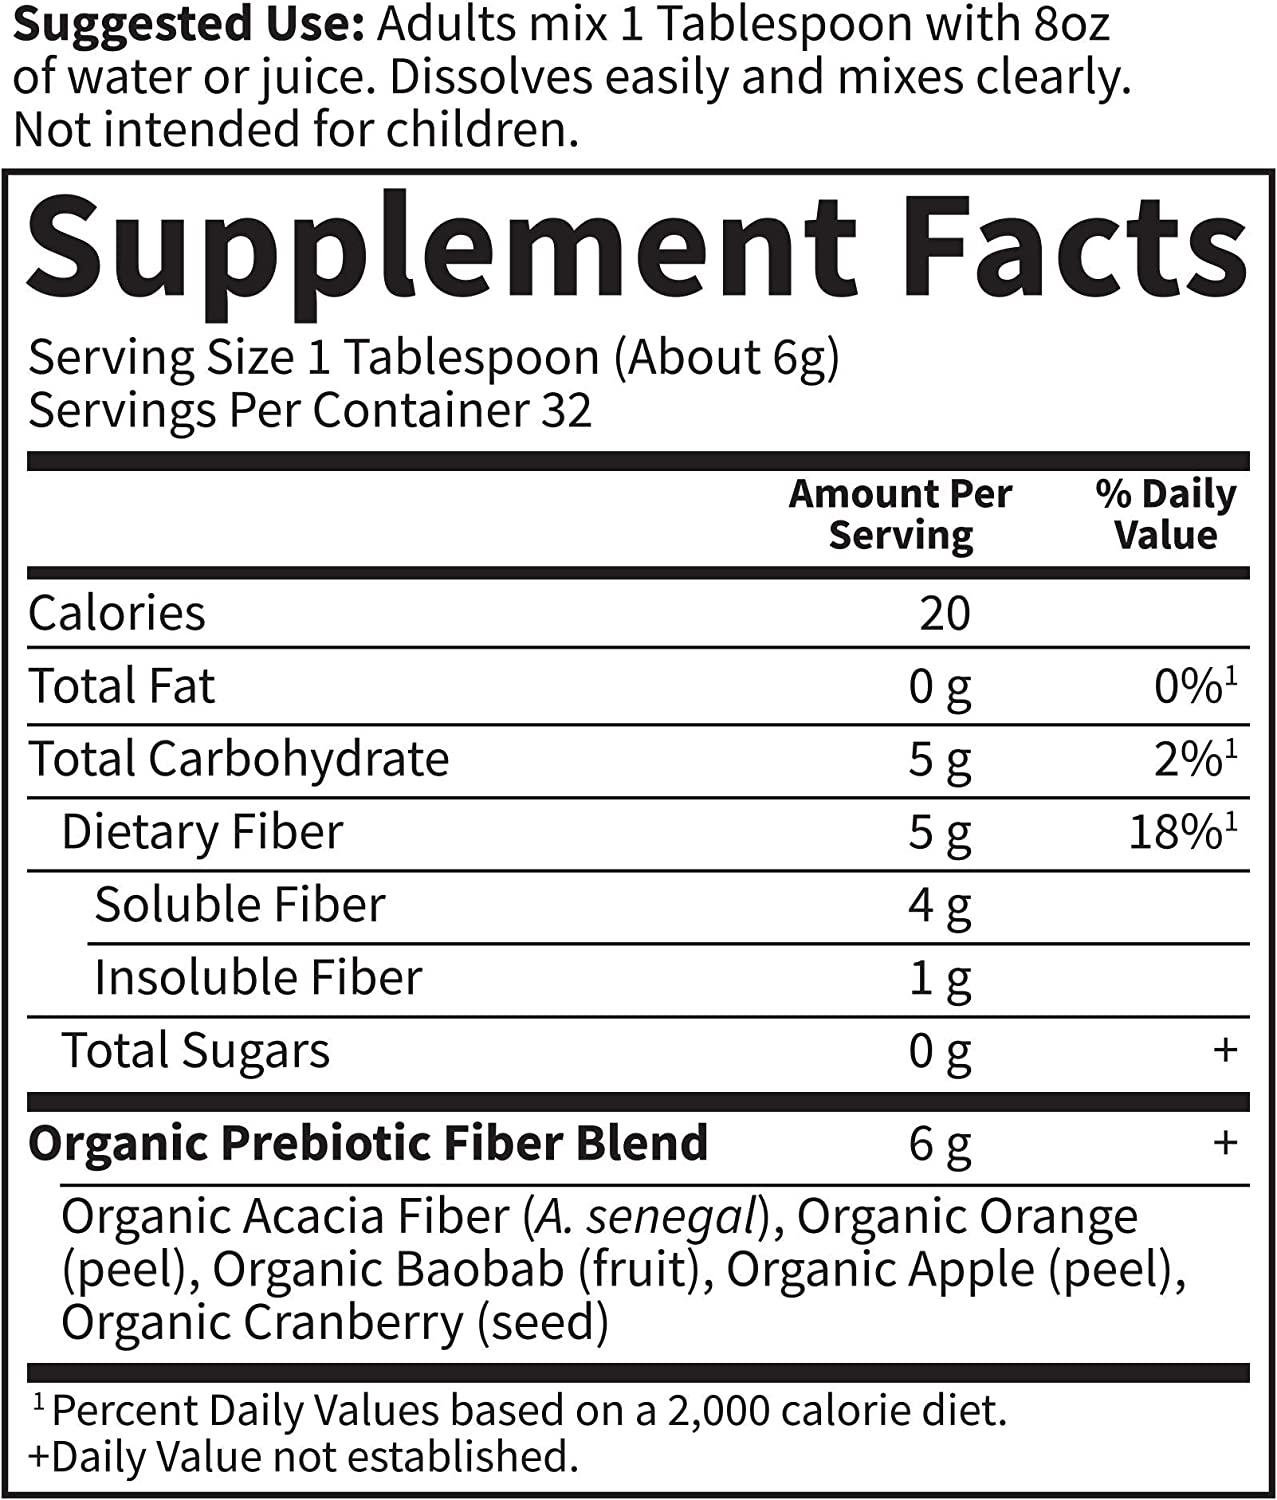 Garden of Life Dr. Formulated Organic Fiber Supplement - Unflavored, 32 Servings, Organic Prebiotic Fiber Supplement, Psyllium Free, Vegan Superfood Fiber Powder, Constipation Relief, Hunger Control: Health & Personal Care